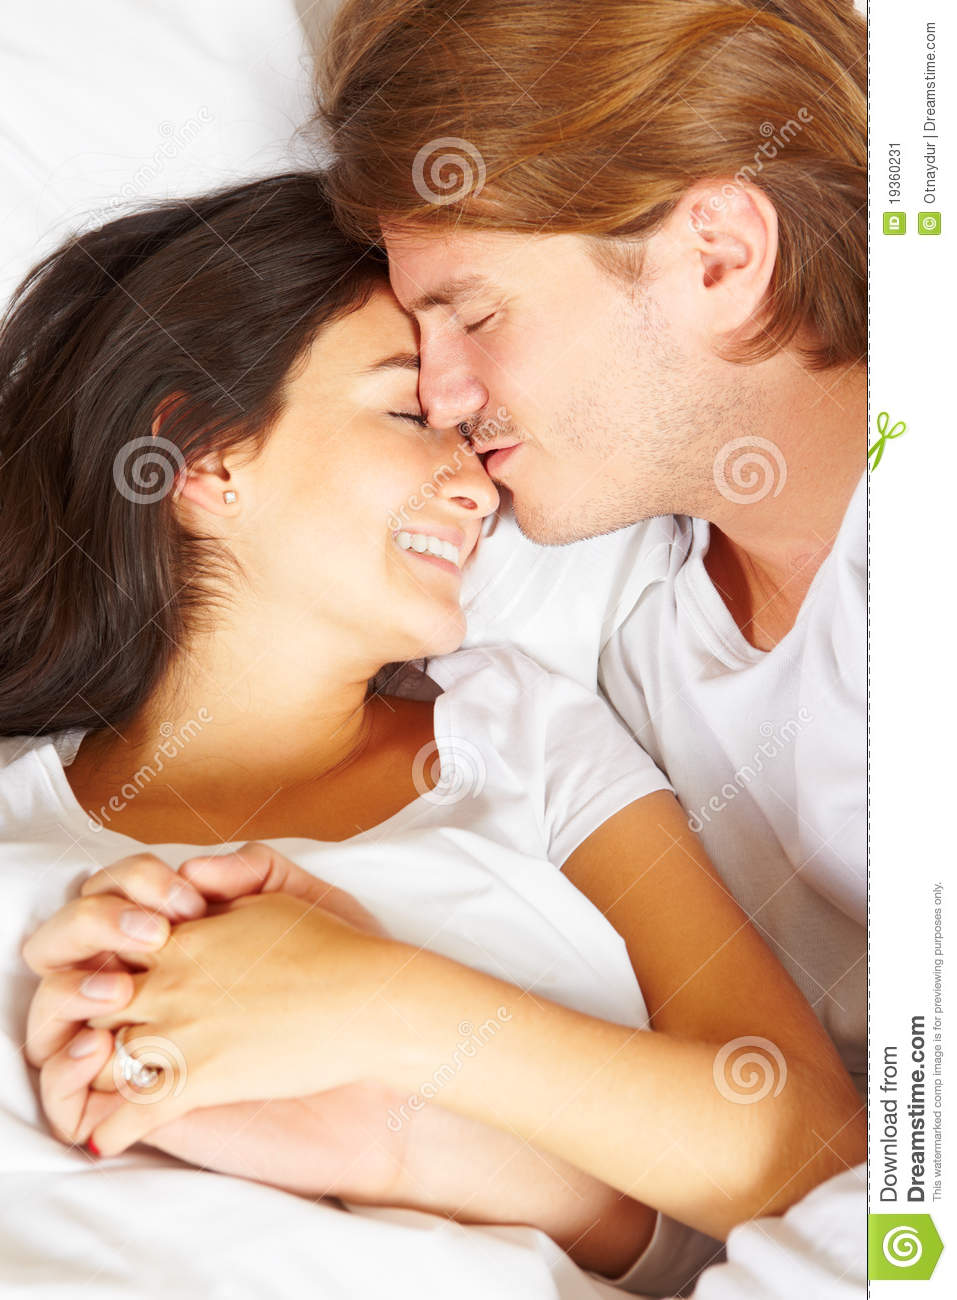 Couple Showing Romance On Bed Stock Image Image 19360231. Apply Romantic Bedroom Ideas For Romantic Couple Midcityeast